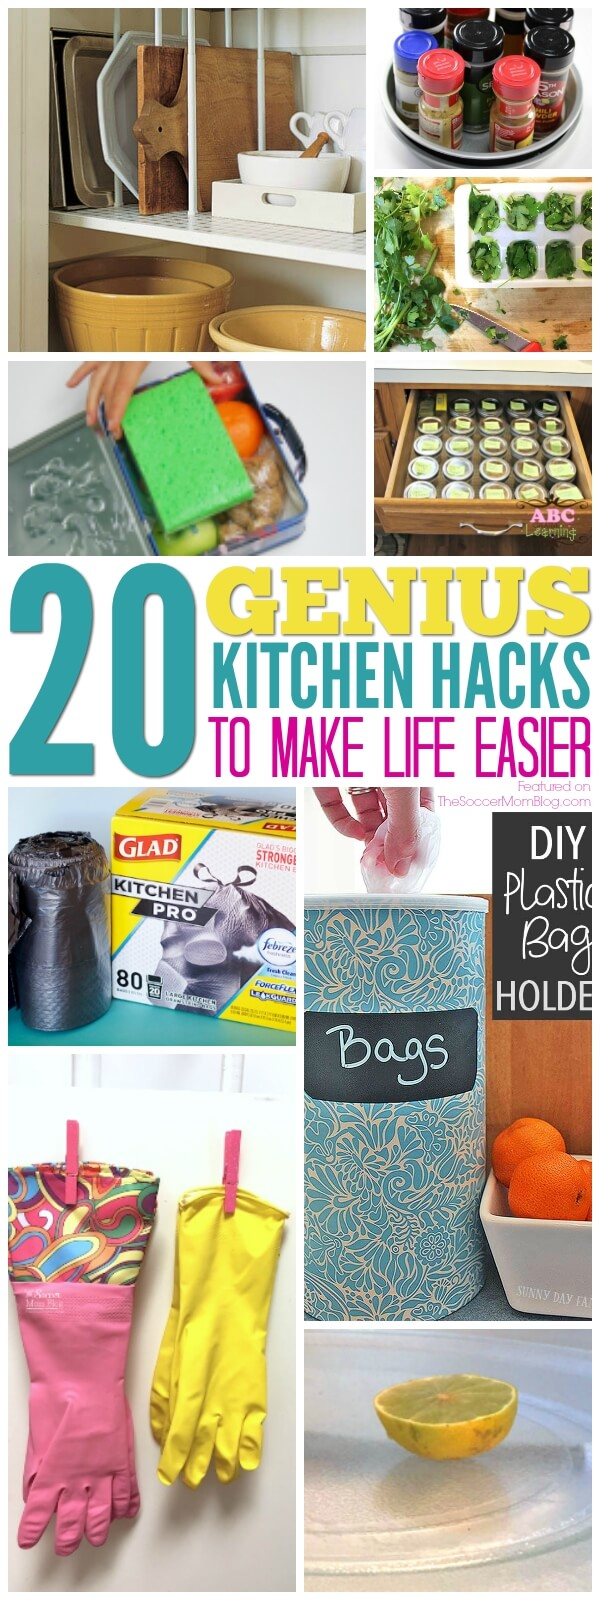 Save time, tackle clutter, and make life a little bit easier with these genius kitchen hacks from top home bloggers! Storage, organization, cleaning & more!